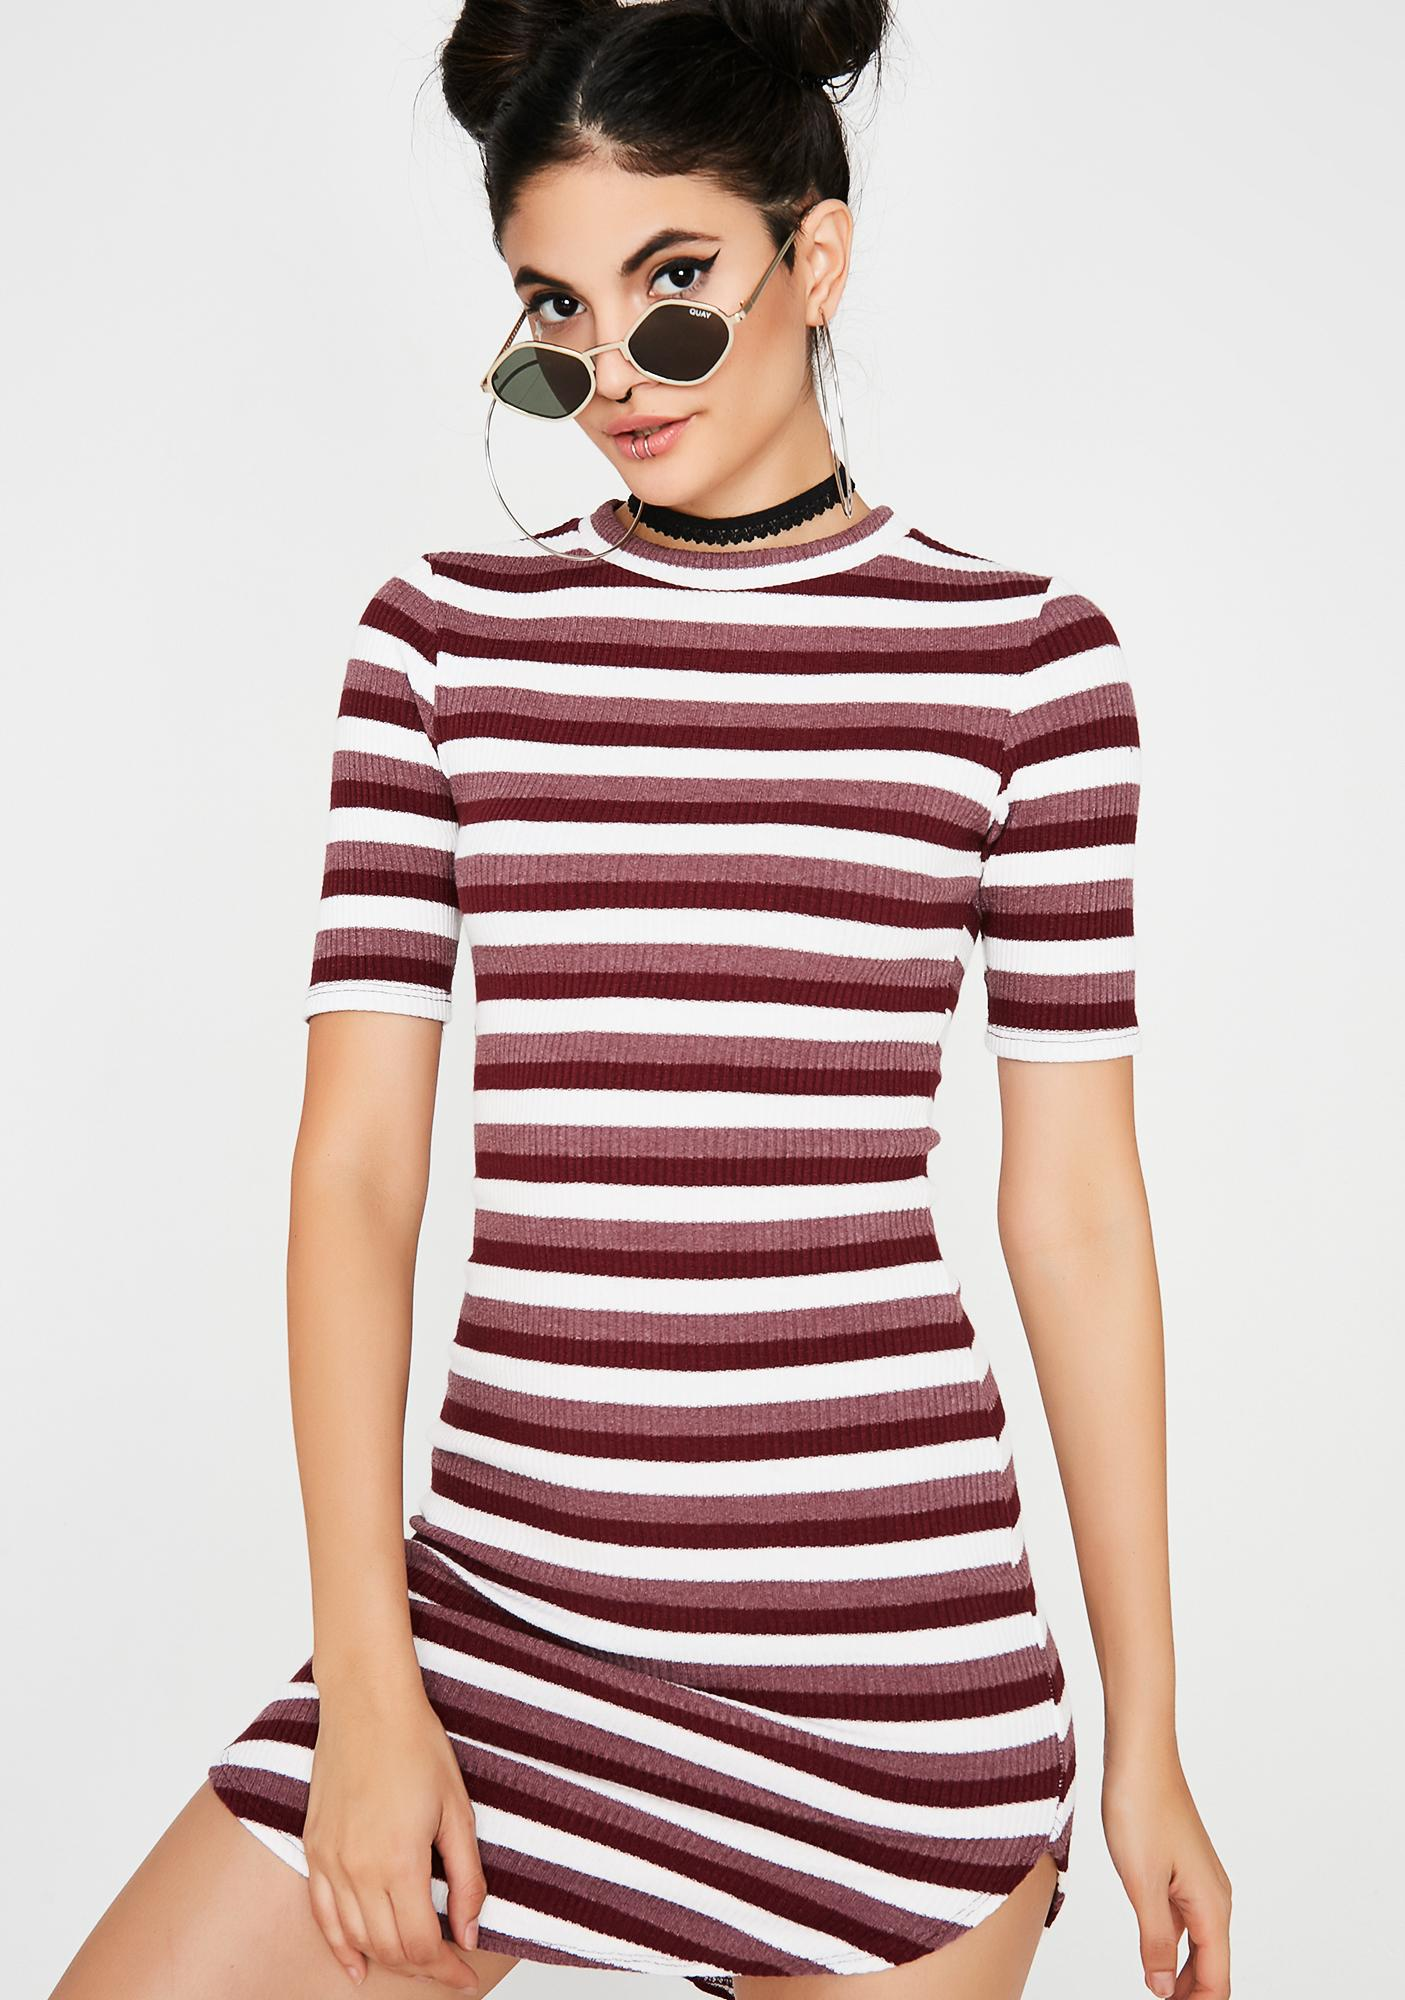 Mod About You Striped Dress